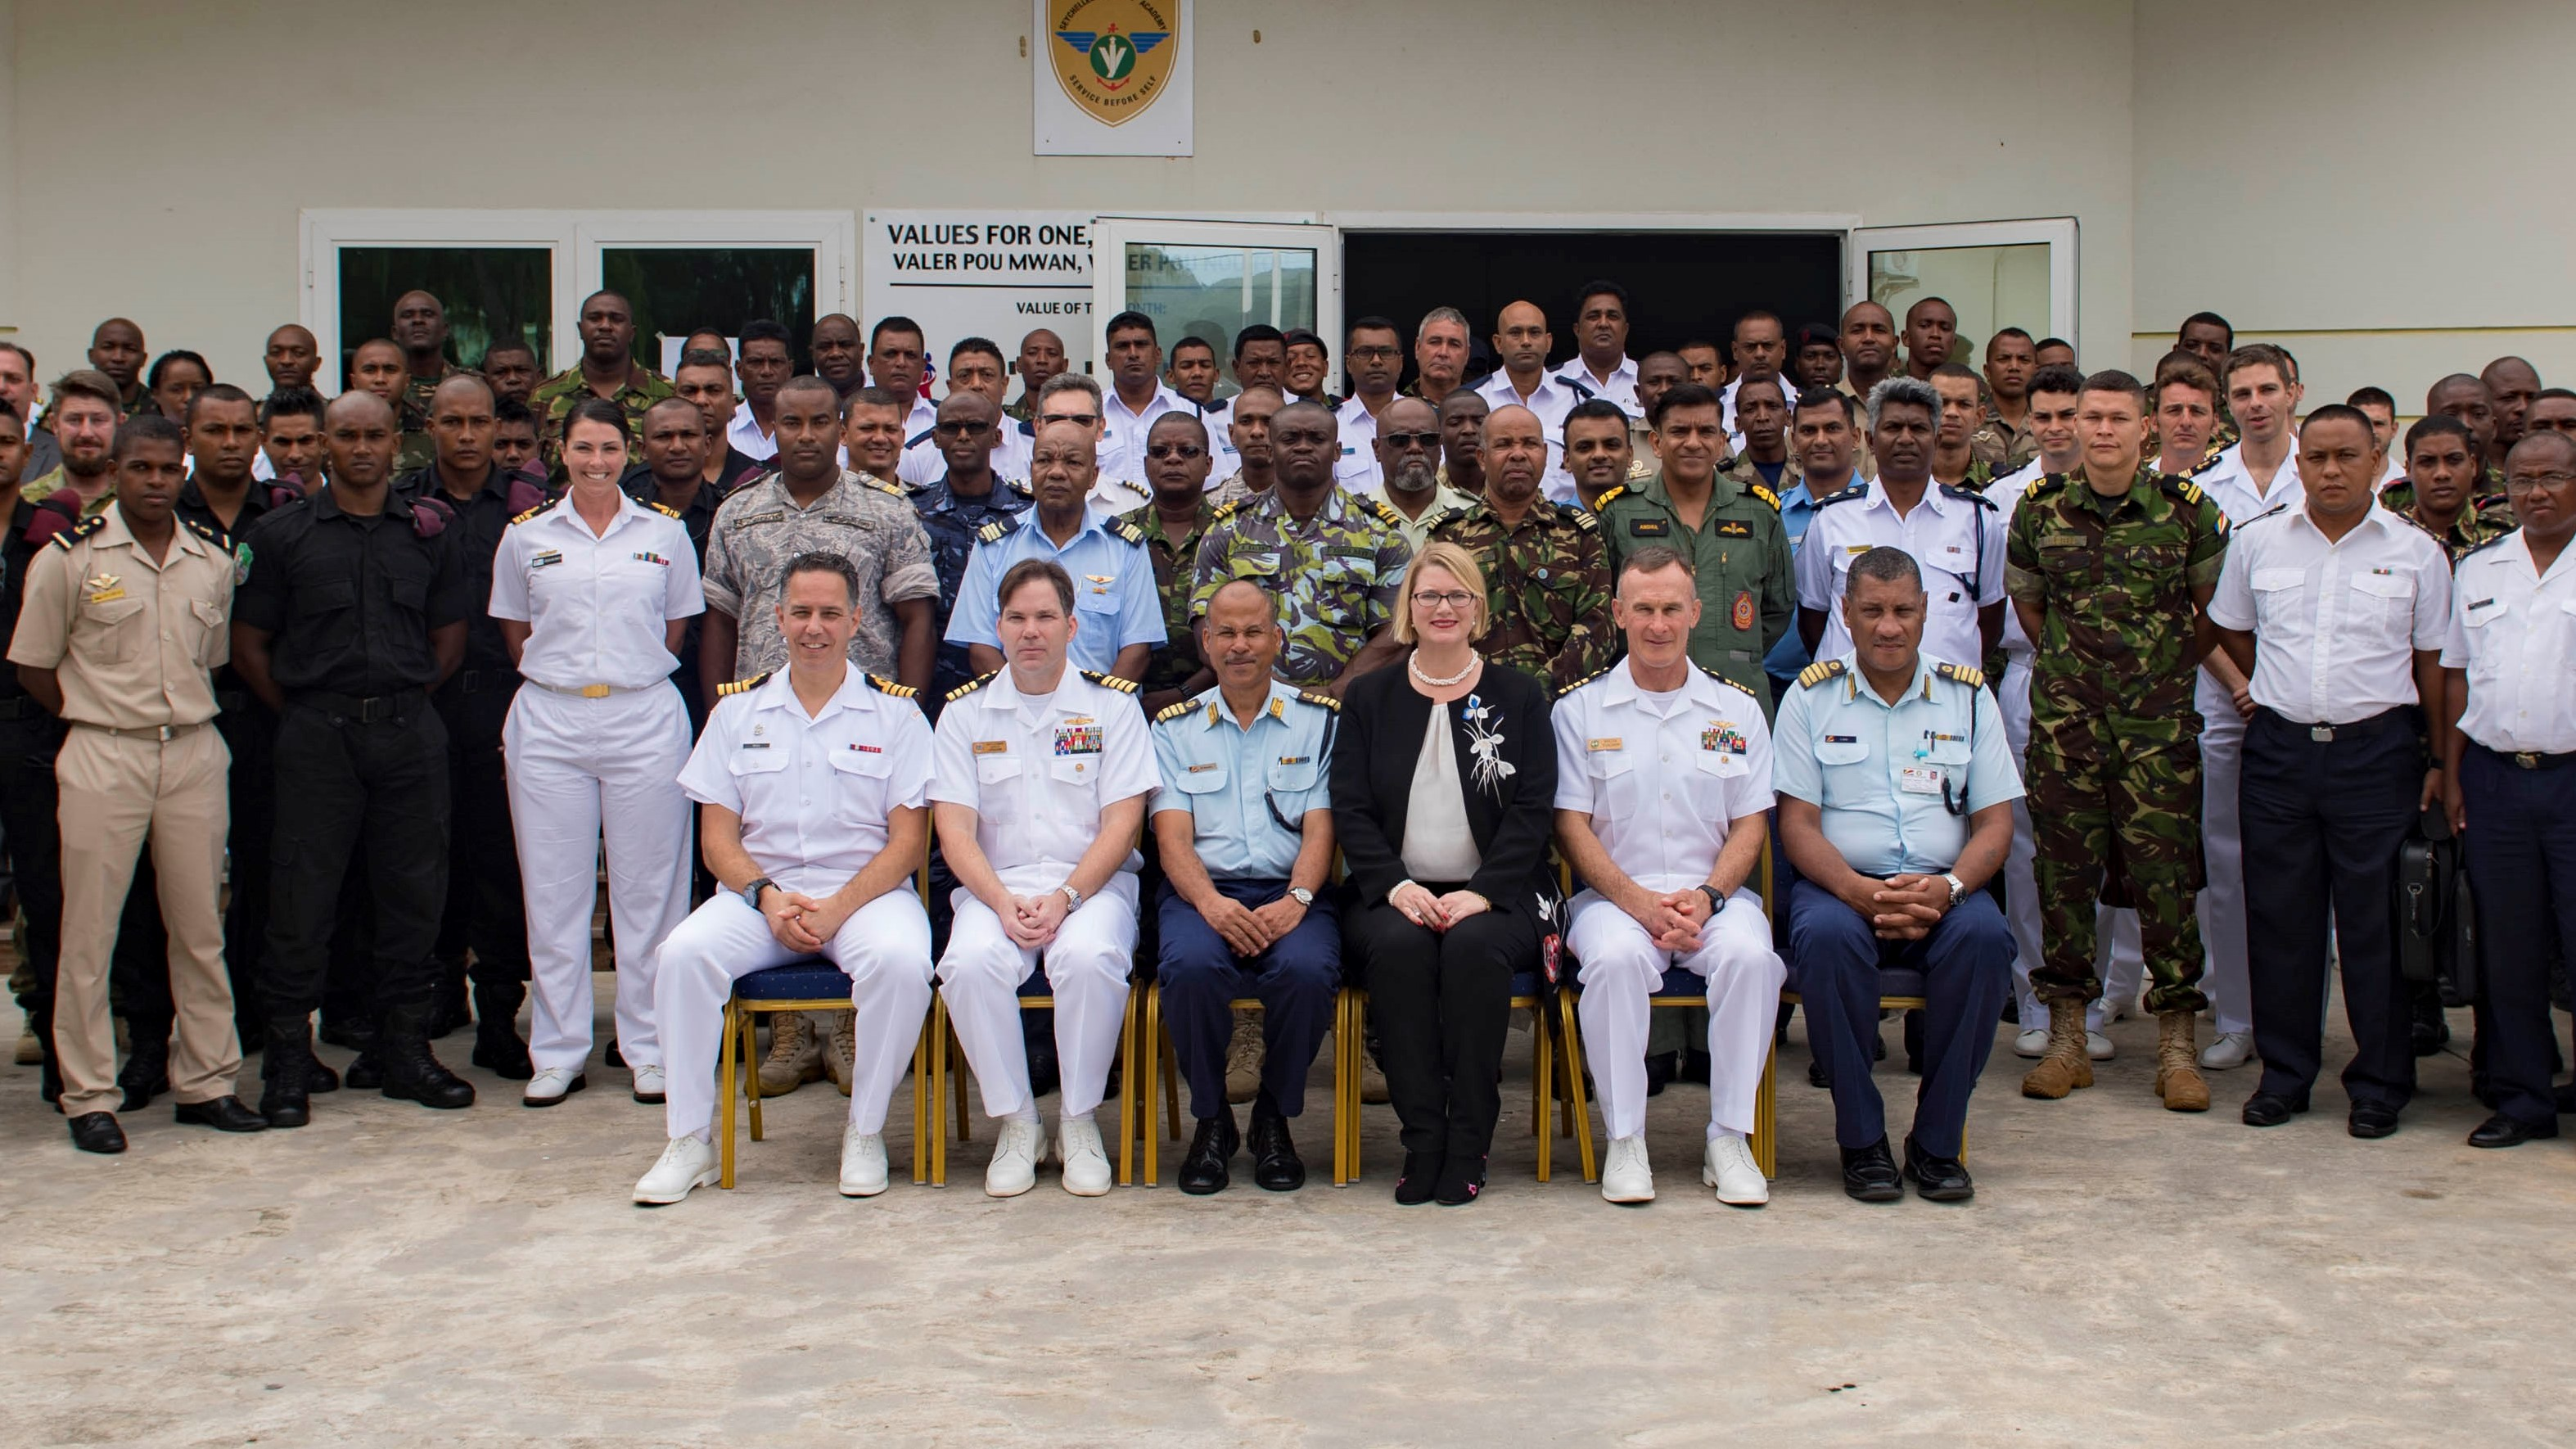 180131-N-JI086-114 VICTORIA, Seychelles (Jan. 31, 2018) Sailors from participating countries pose for a group photo after the opening ceremony of exercise Cutlass Express 2018 Jan. 31 in Victoria, Seychelles. Cutlass Express is designed to improve regional cooperation, maritime domain awareness and information sharing practices to increase capabilities of East African and Western Indian Ocean nations. (U.S. Navy photo by Mass Communication Specialist 3rd Class Ford Williams/Released)